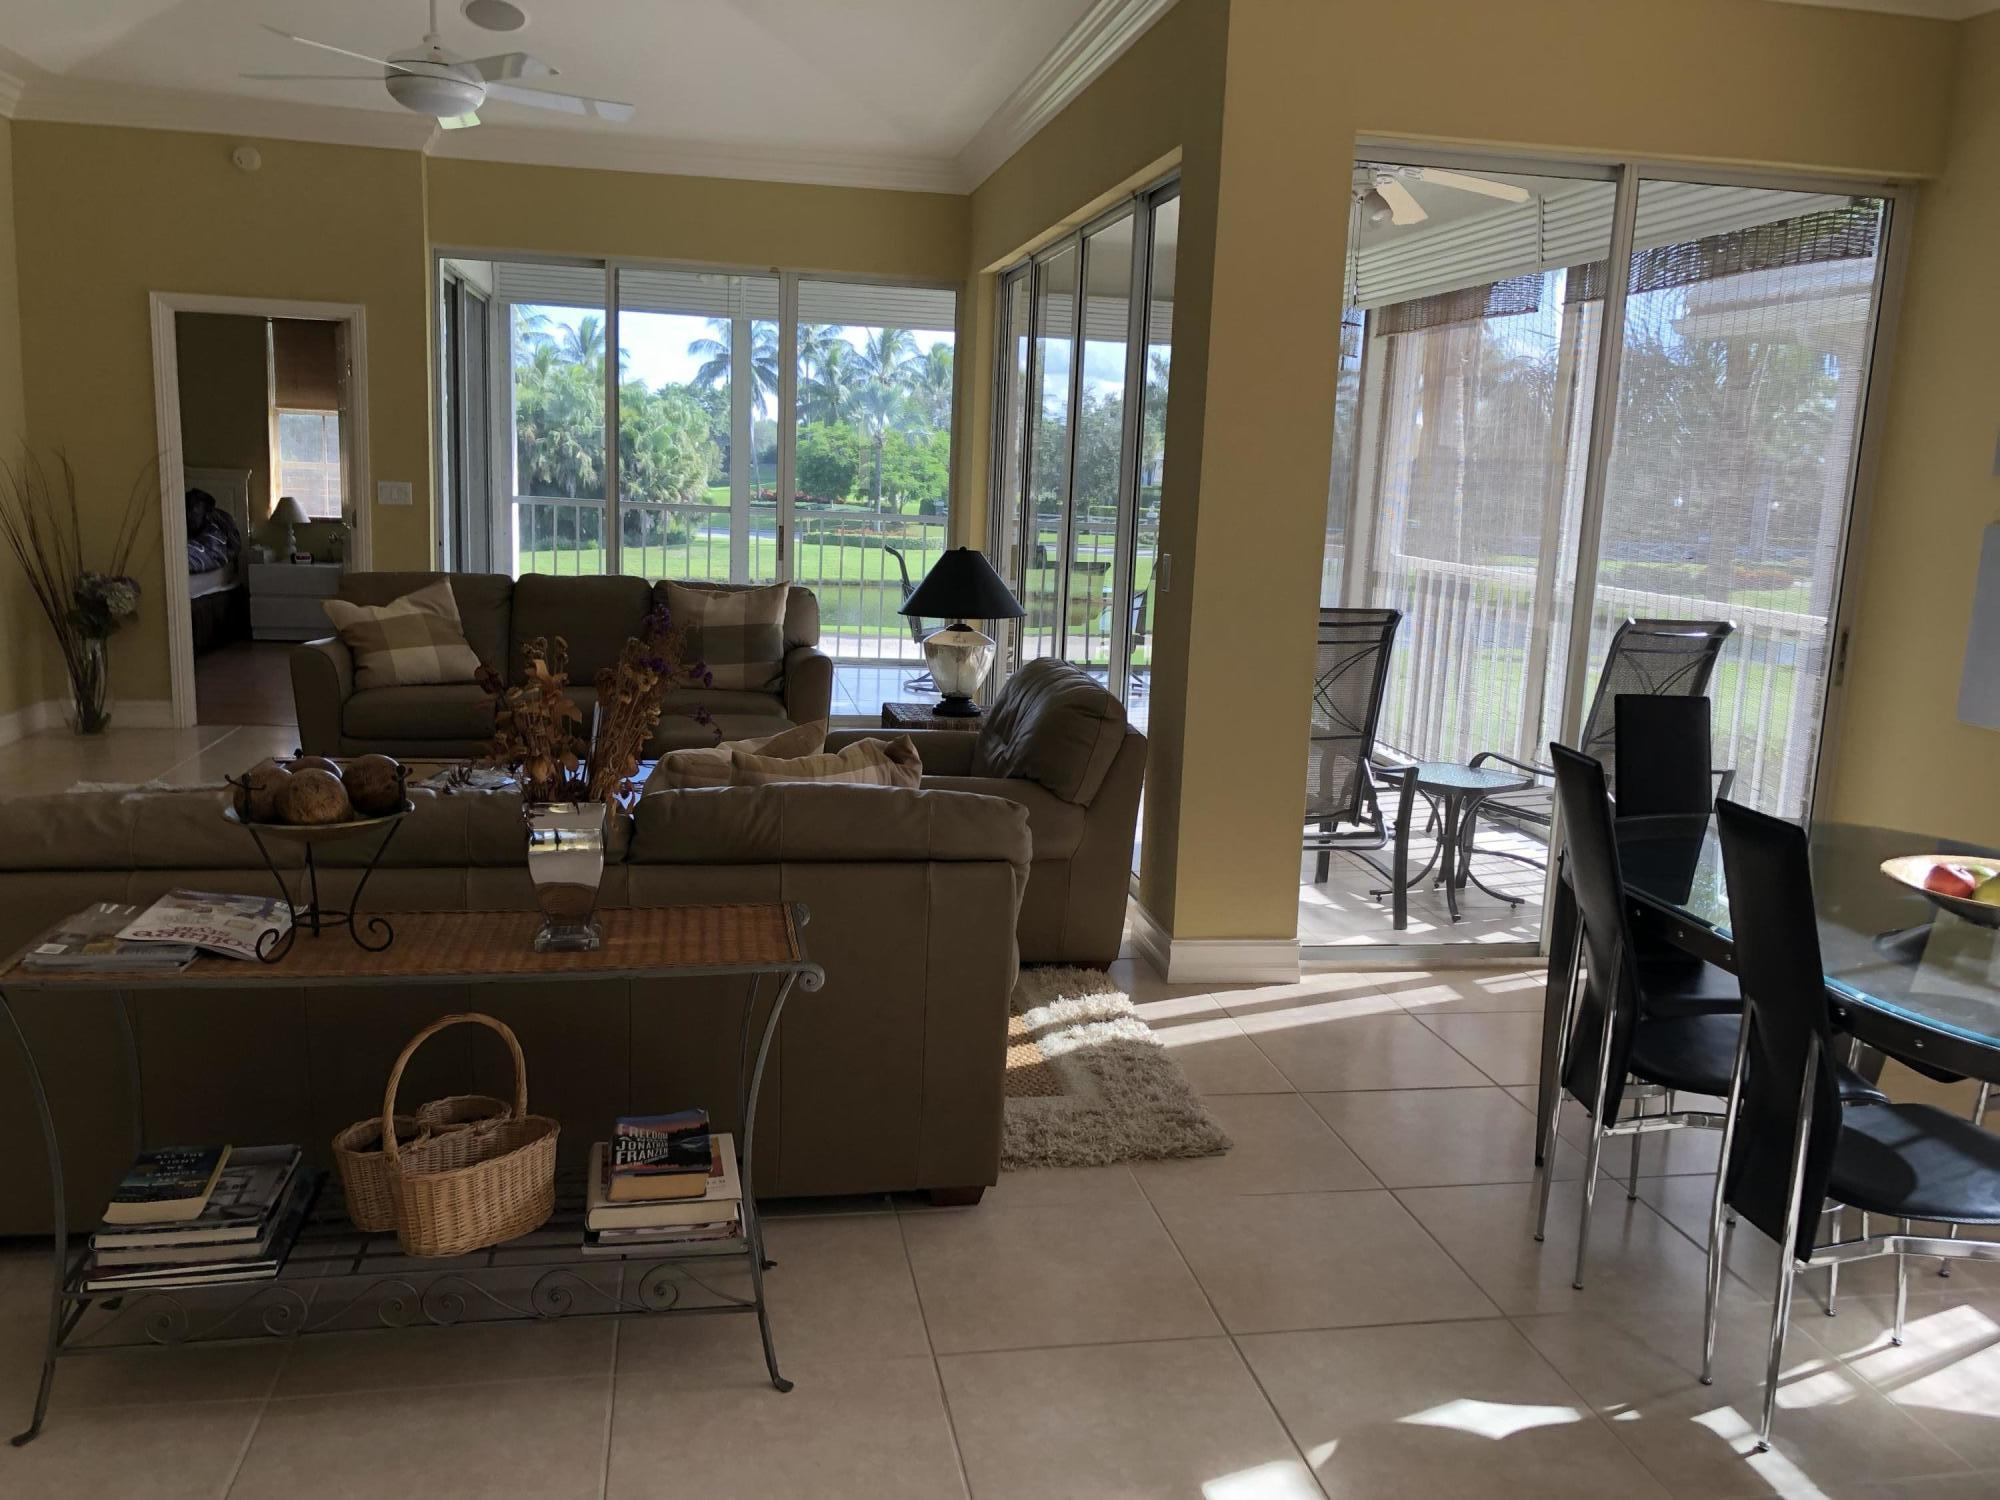 Catalina At The Polo Club Condo in Boca Raton | 3 Bedroom(s) Rental ...